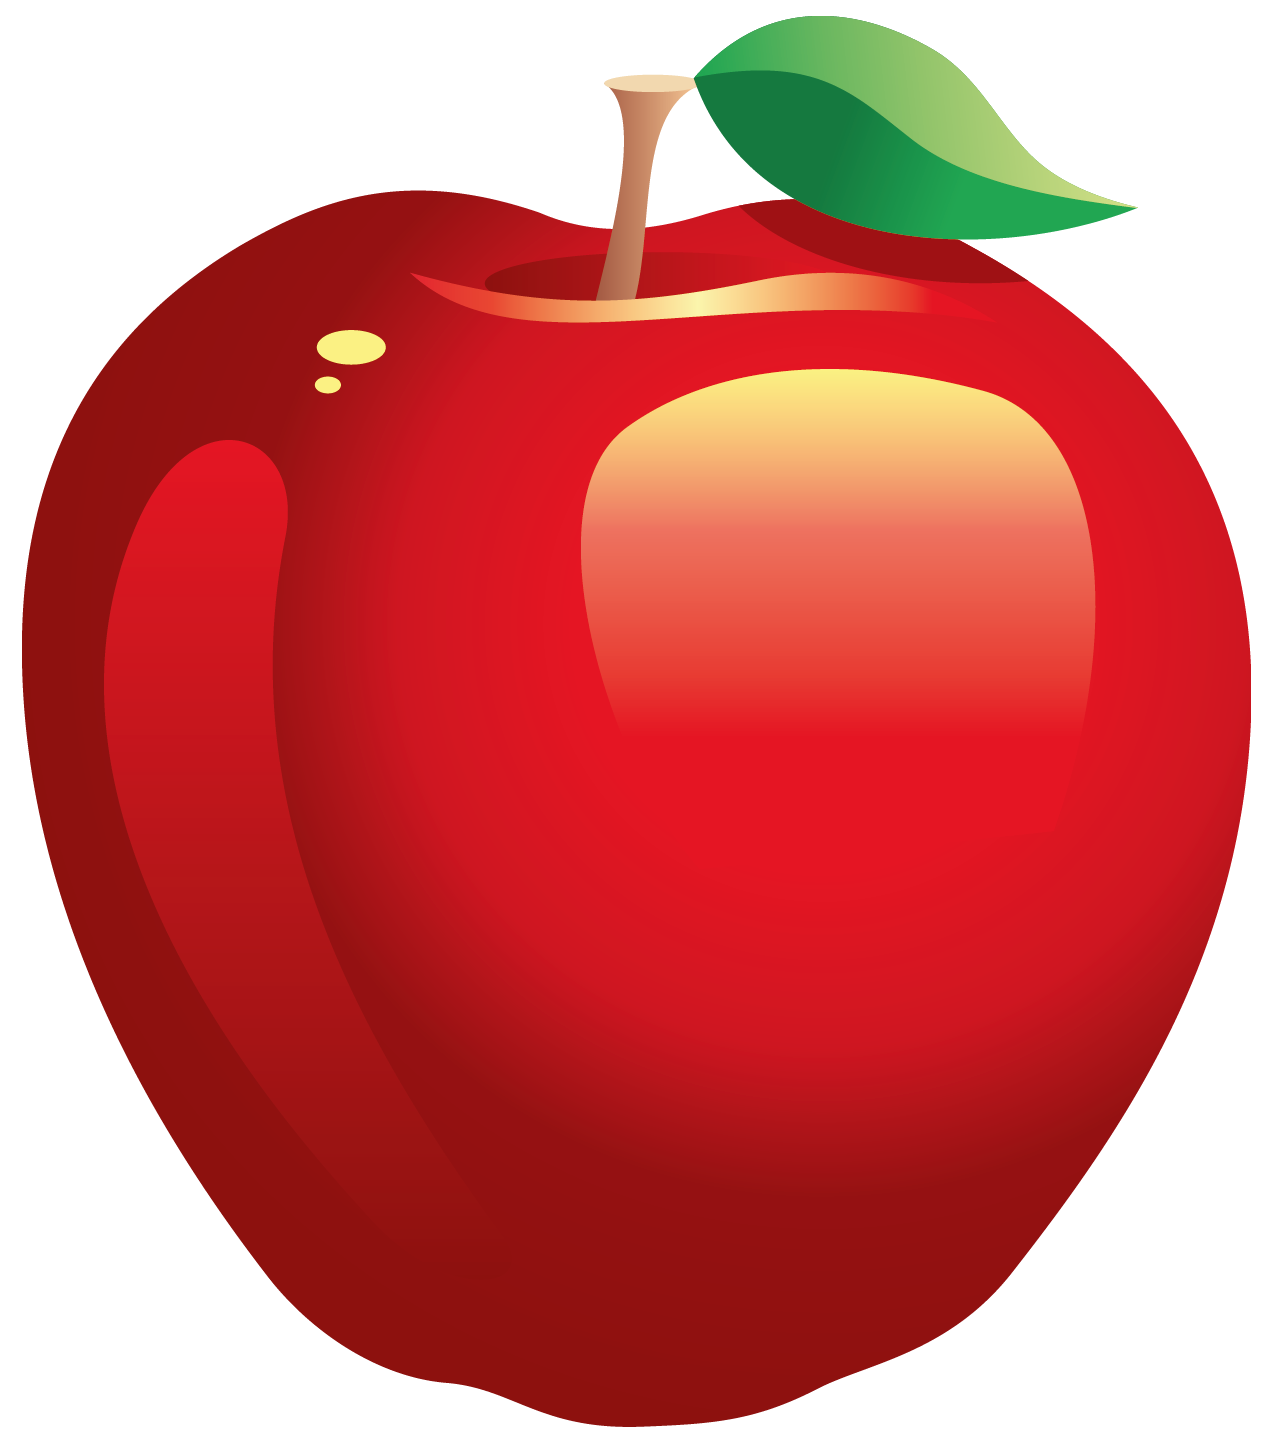 Apple Pic - Apple Clipart